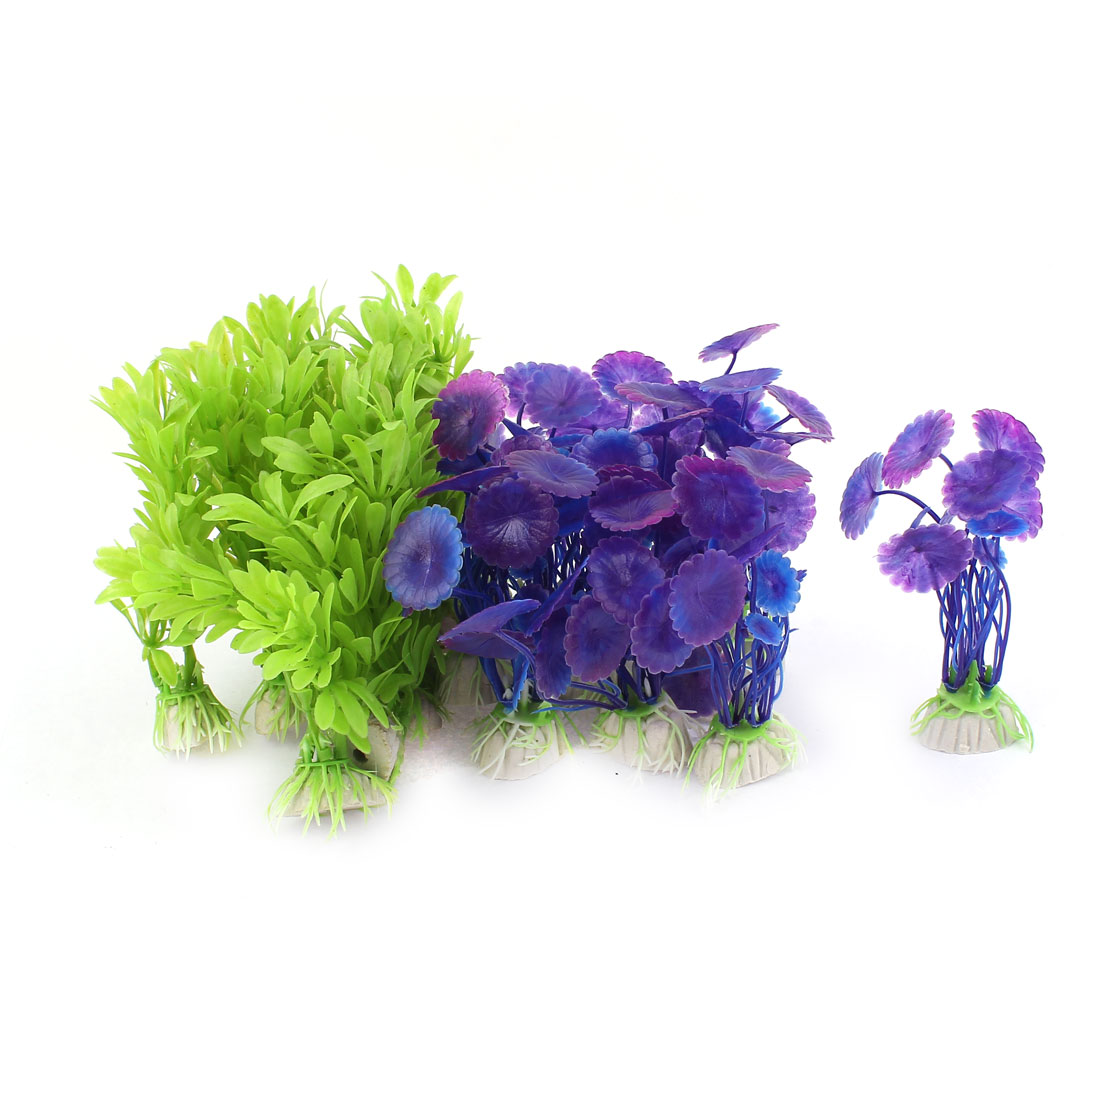 20pcs Aquarium Flower Plants Decor Fish Tank Ornaments Purple Green